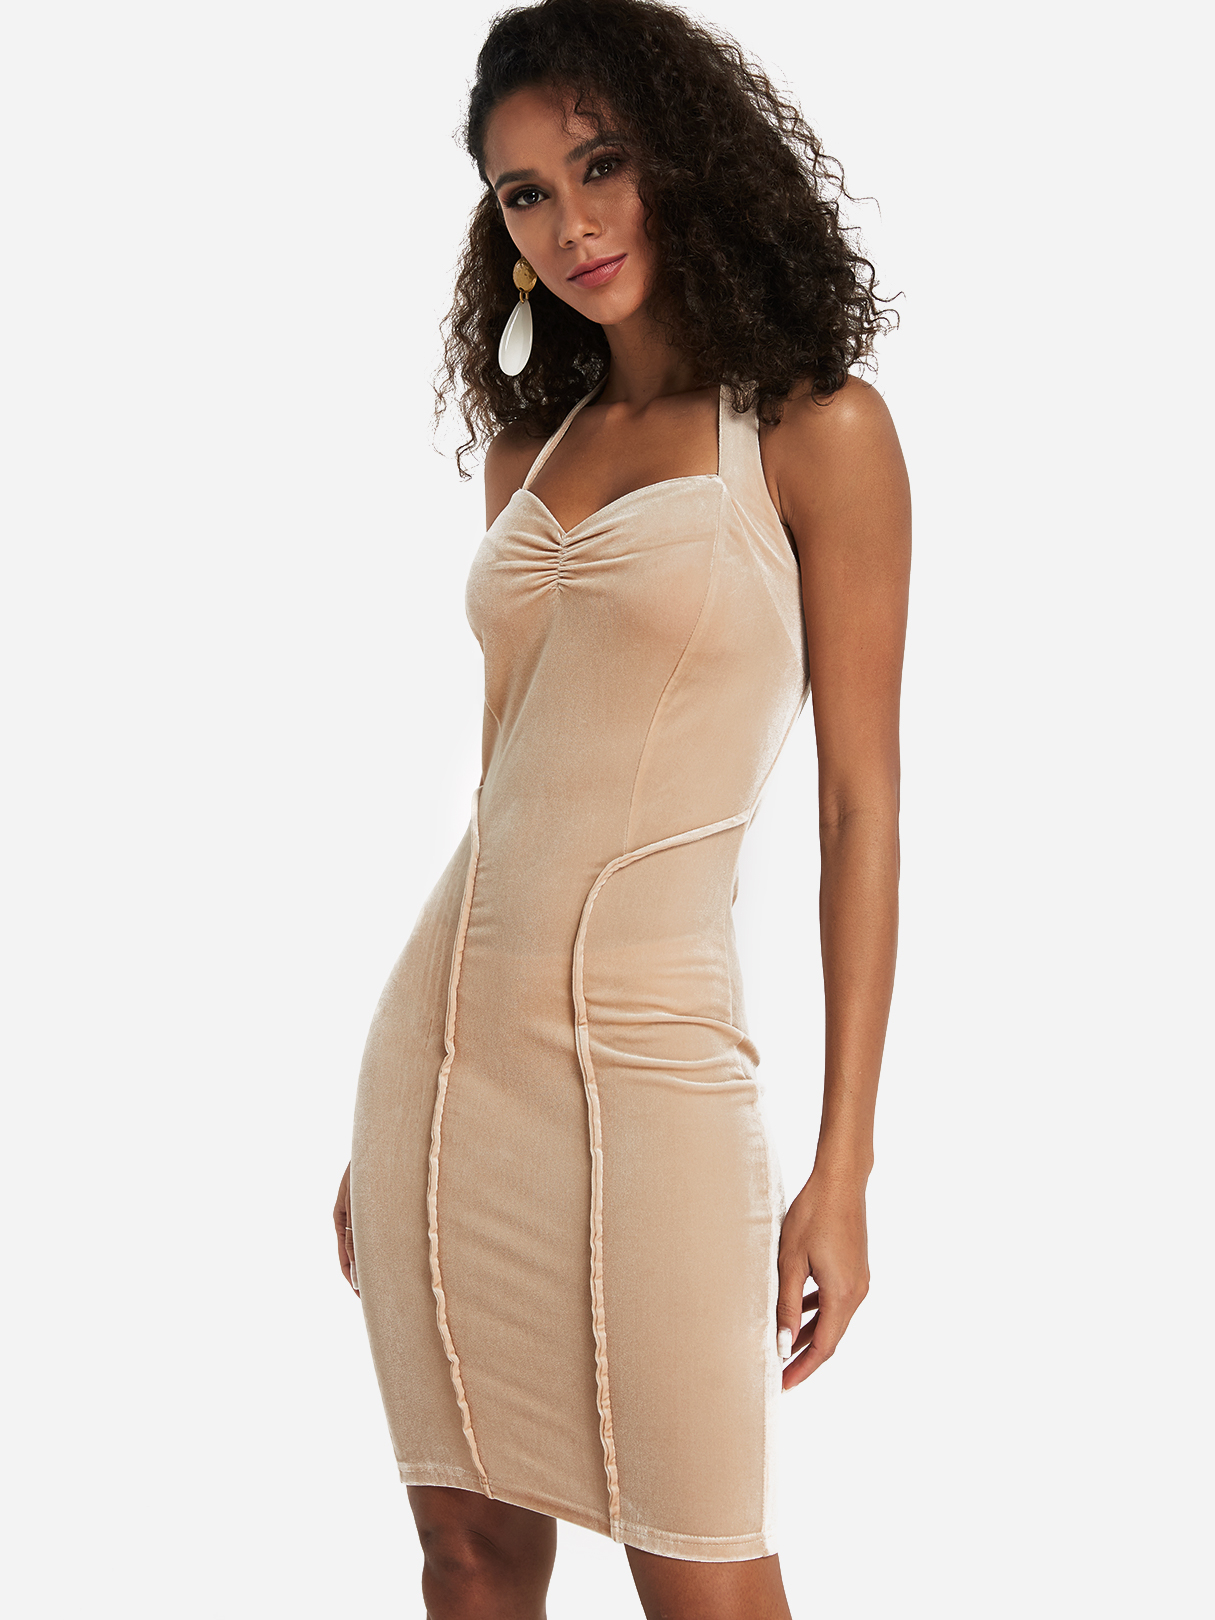 Bilde av Apricot Backless Halter Bodycon Dress